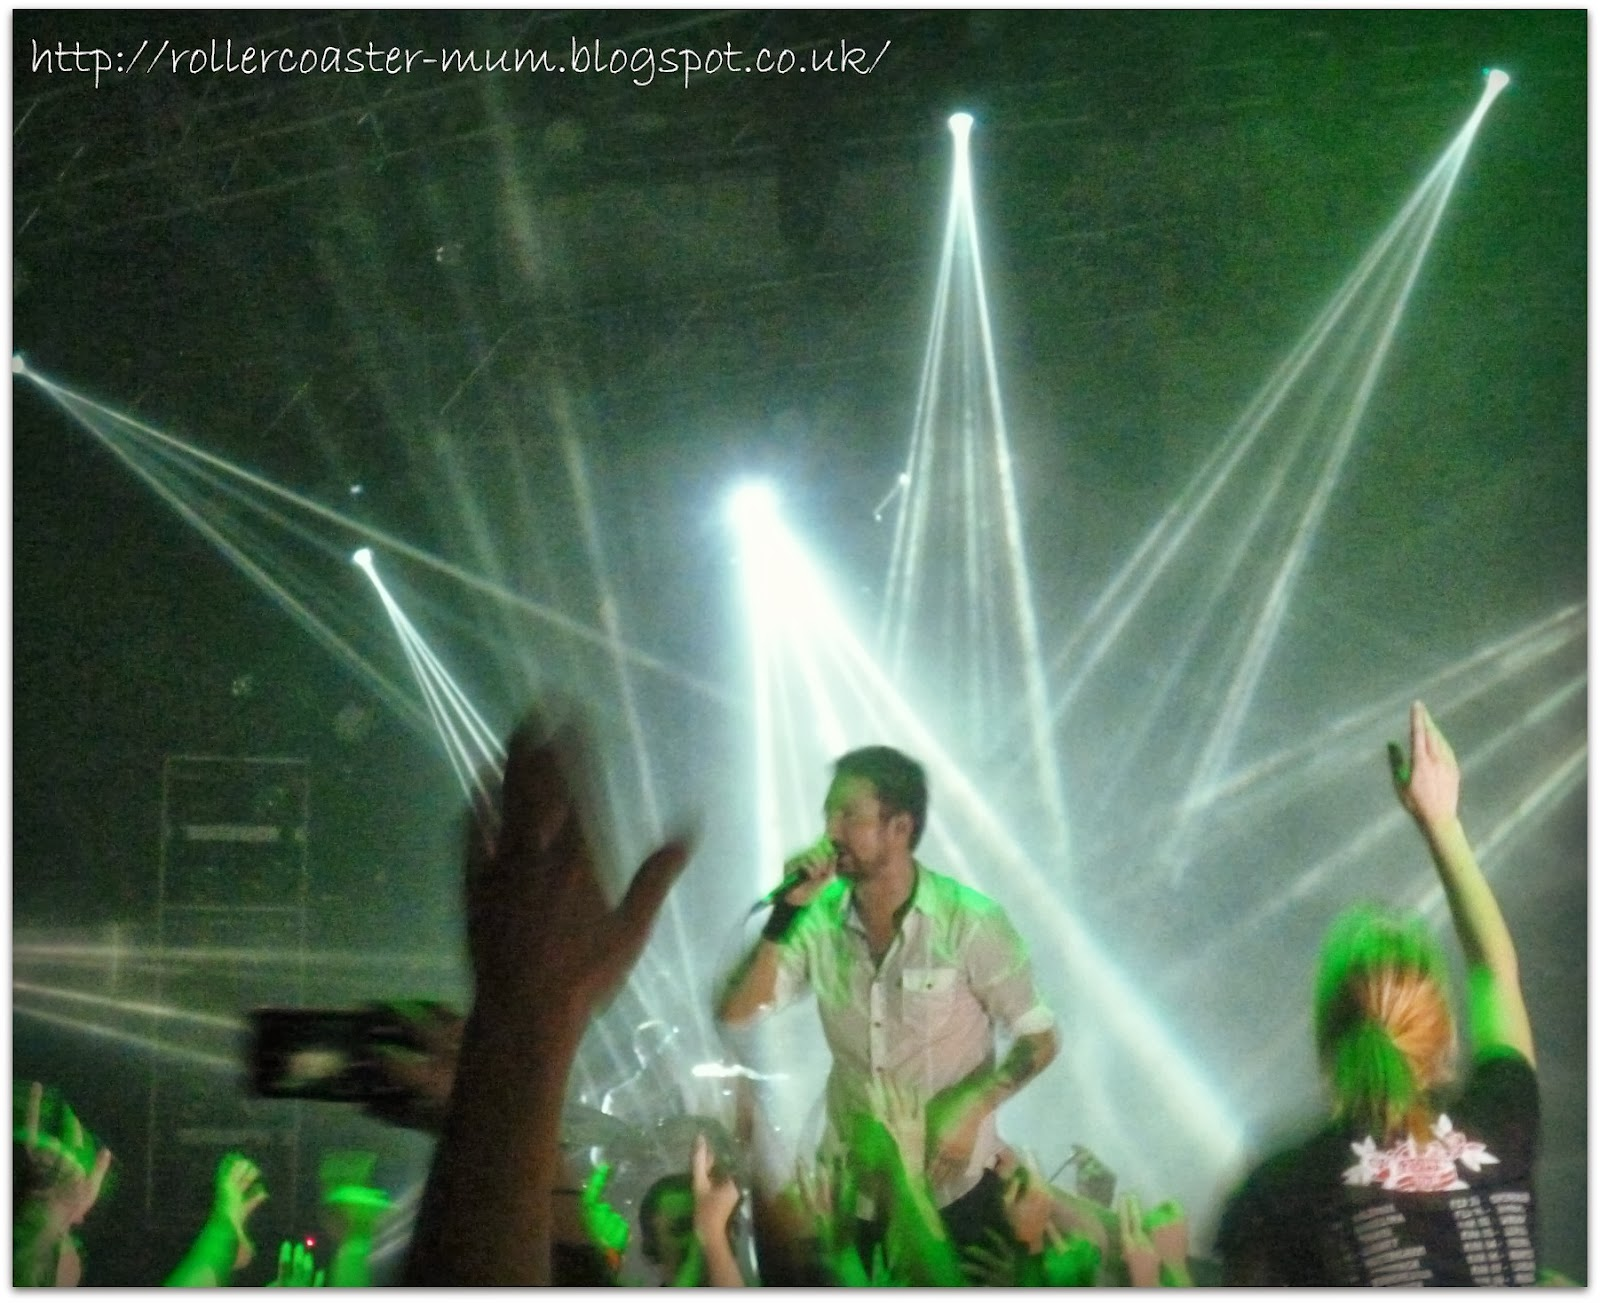 Frank Turner - almost crowdsurfing - Portsmouth Guildhall Feb 2014